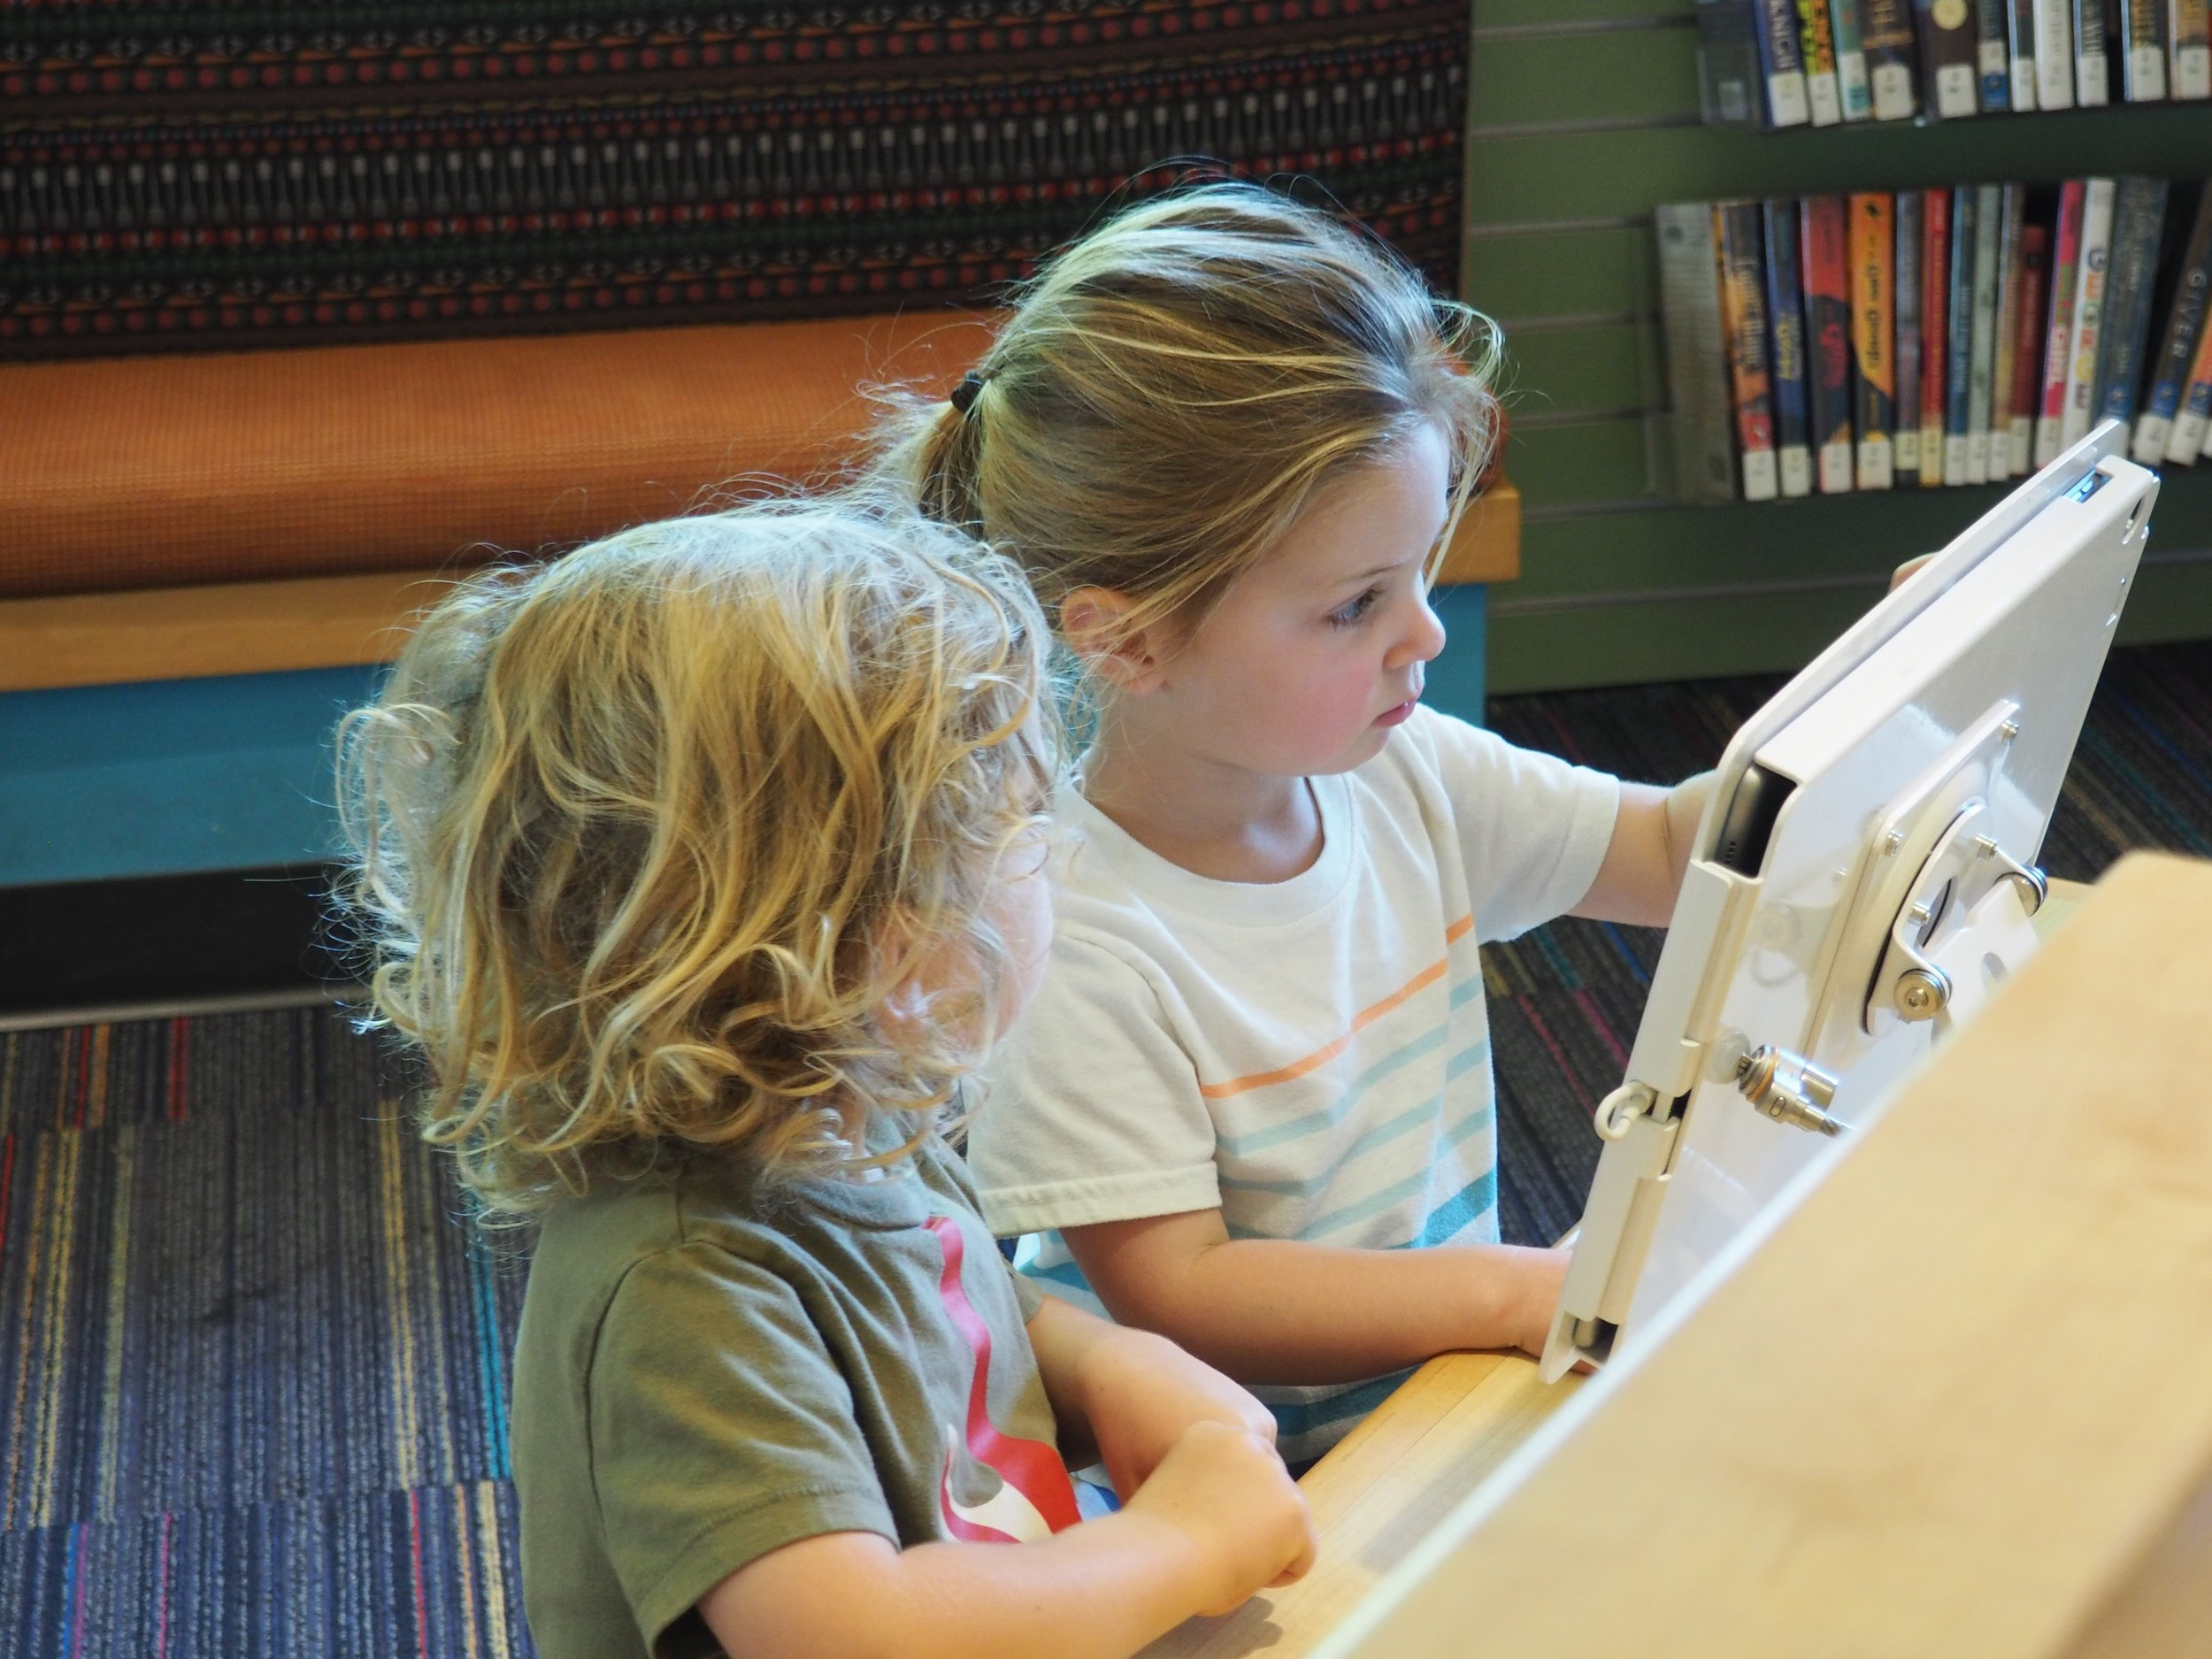 Learning to read at the library